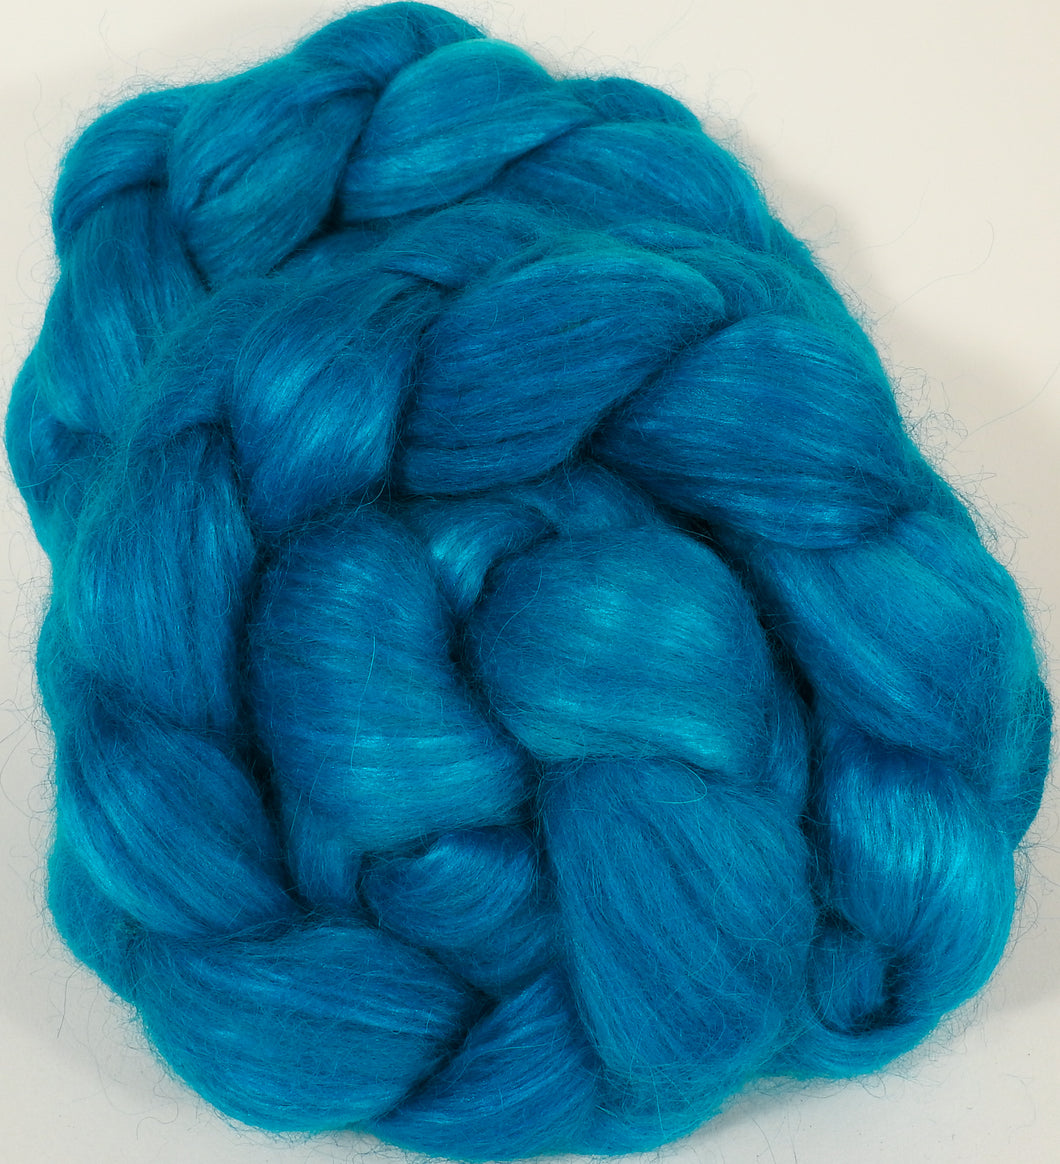 Hand-dyed wensleydale/ mulberry silk roving ( 65/35) -Jersey - Inglenook Fibers